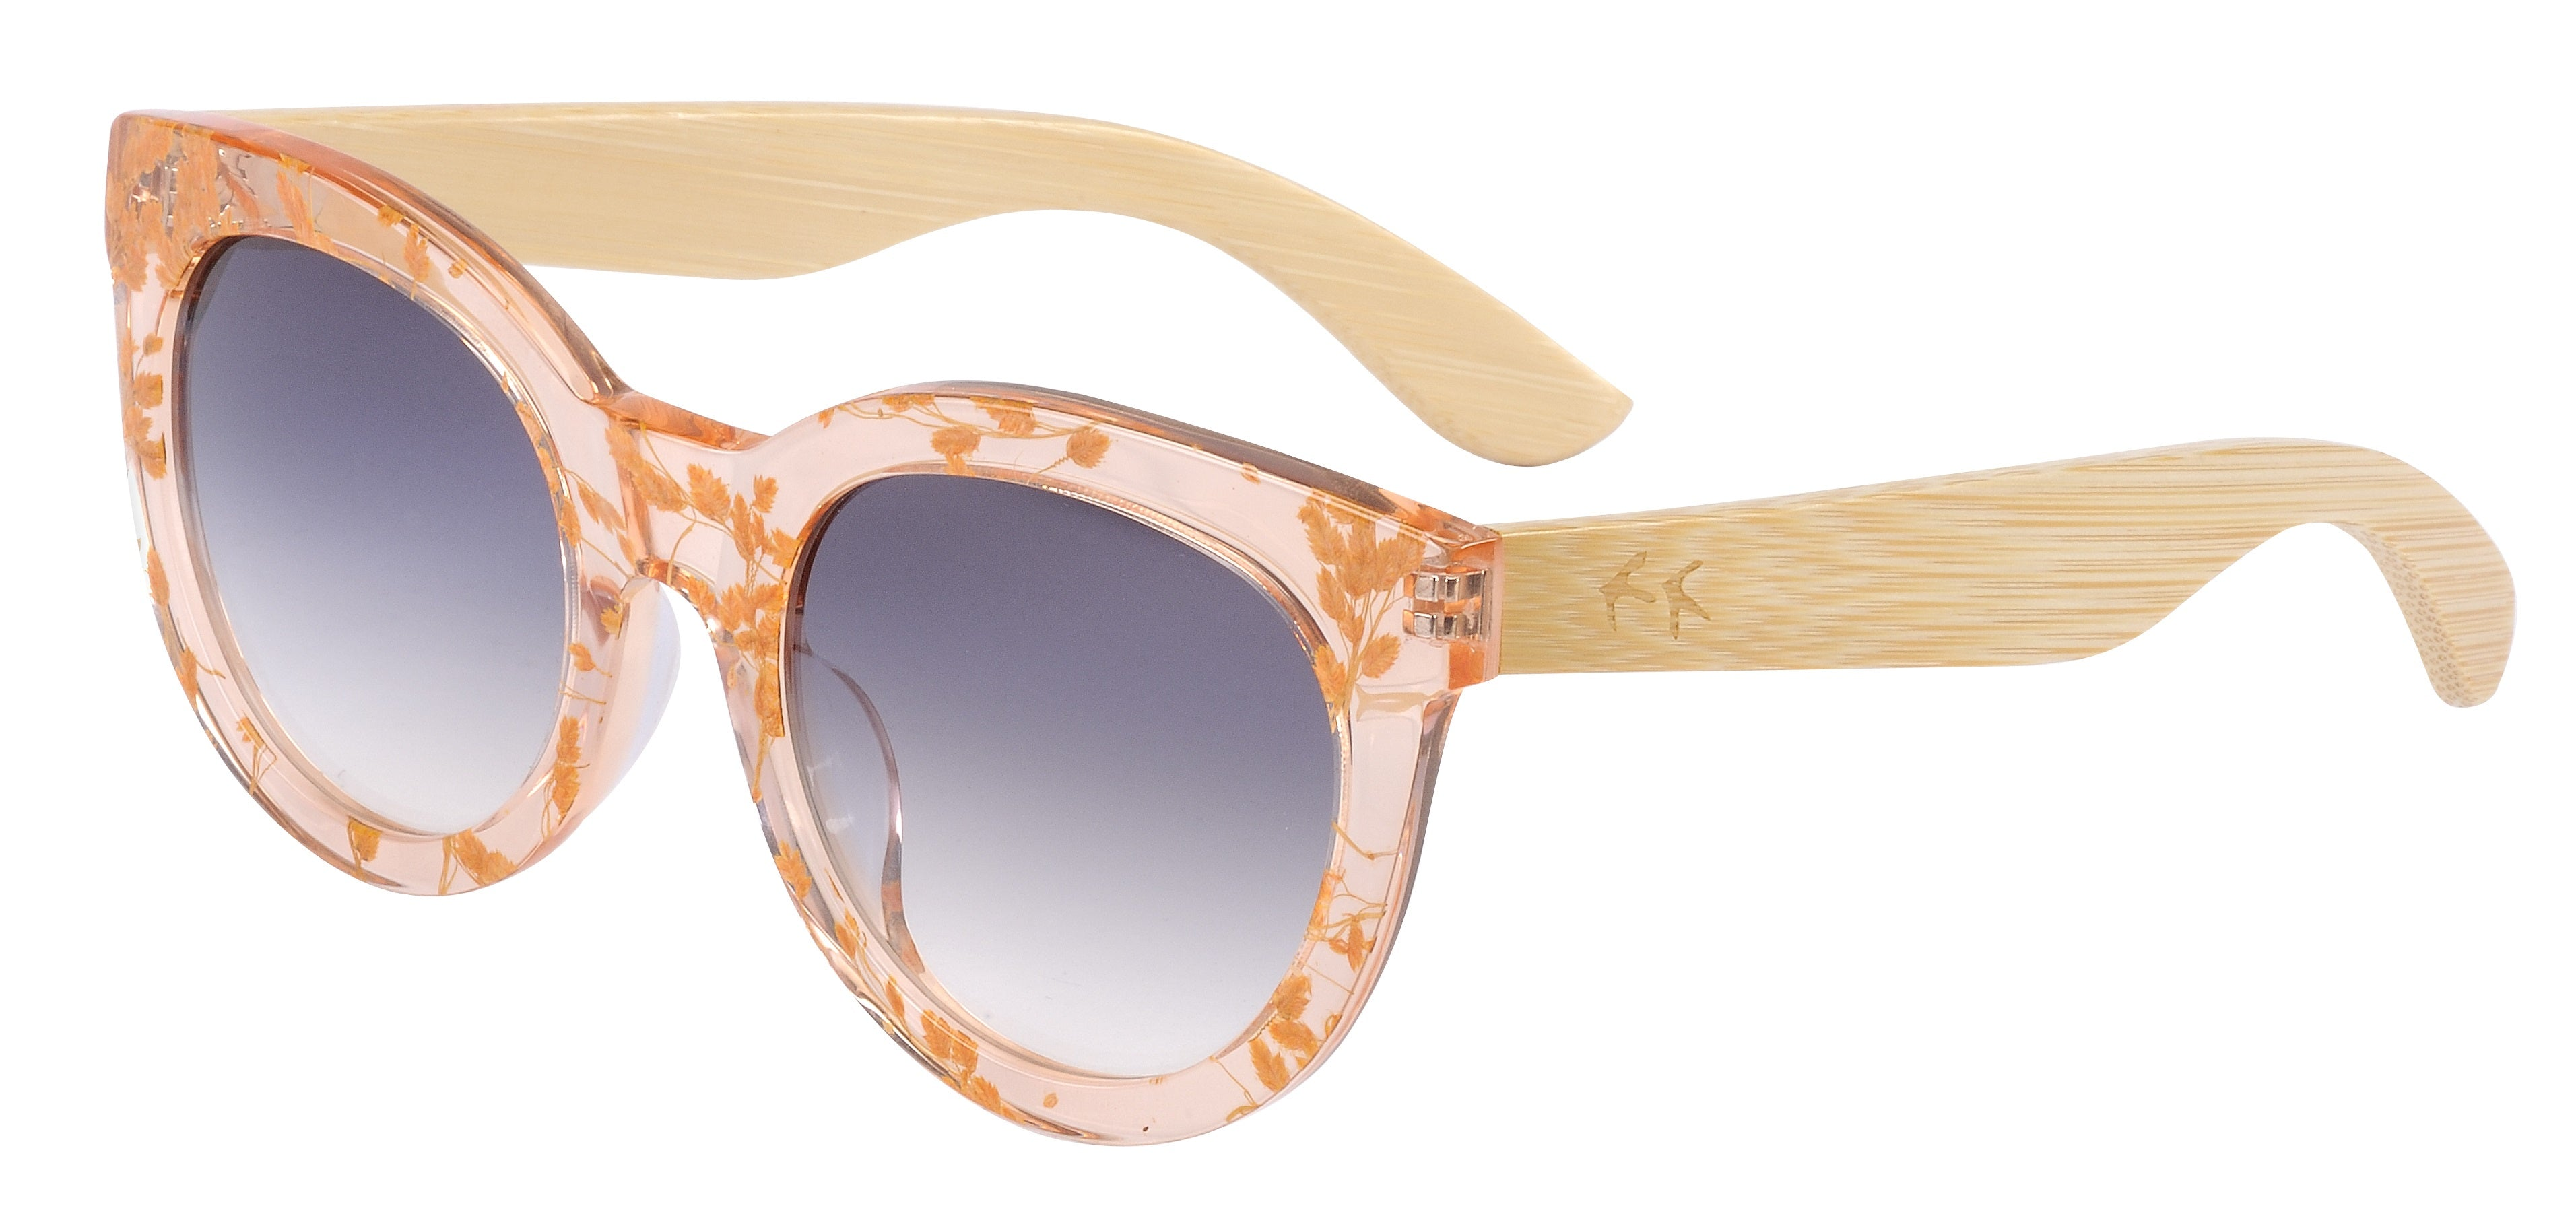 Harvest Wheat Sunglasses